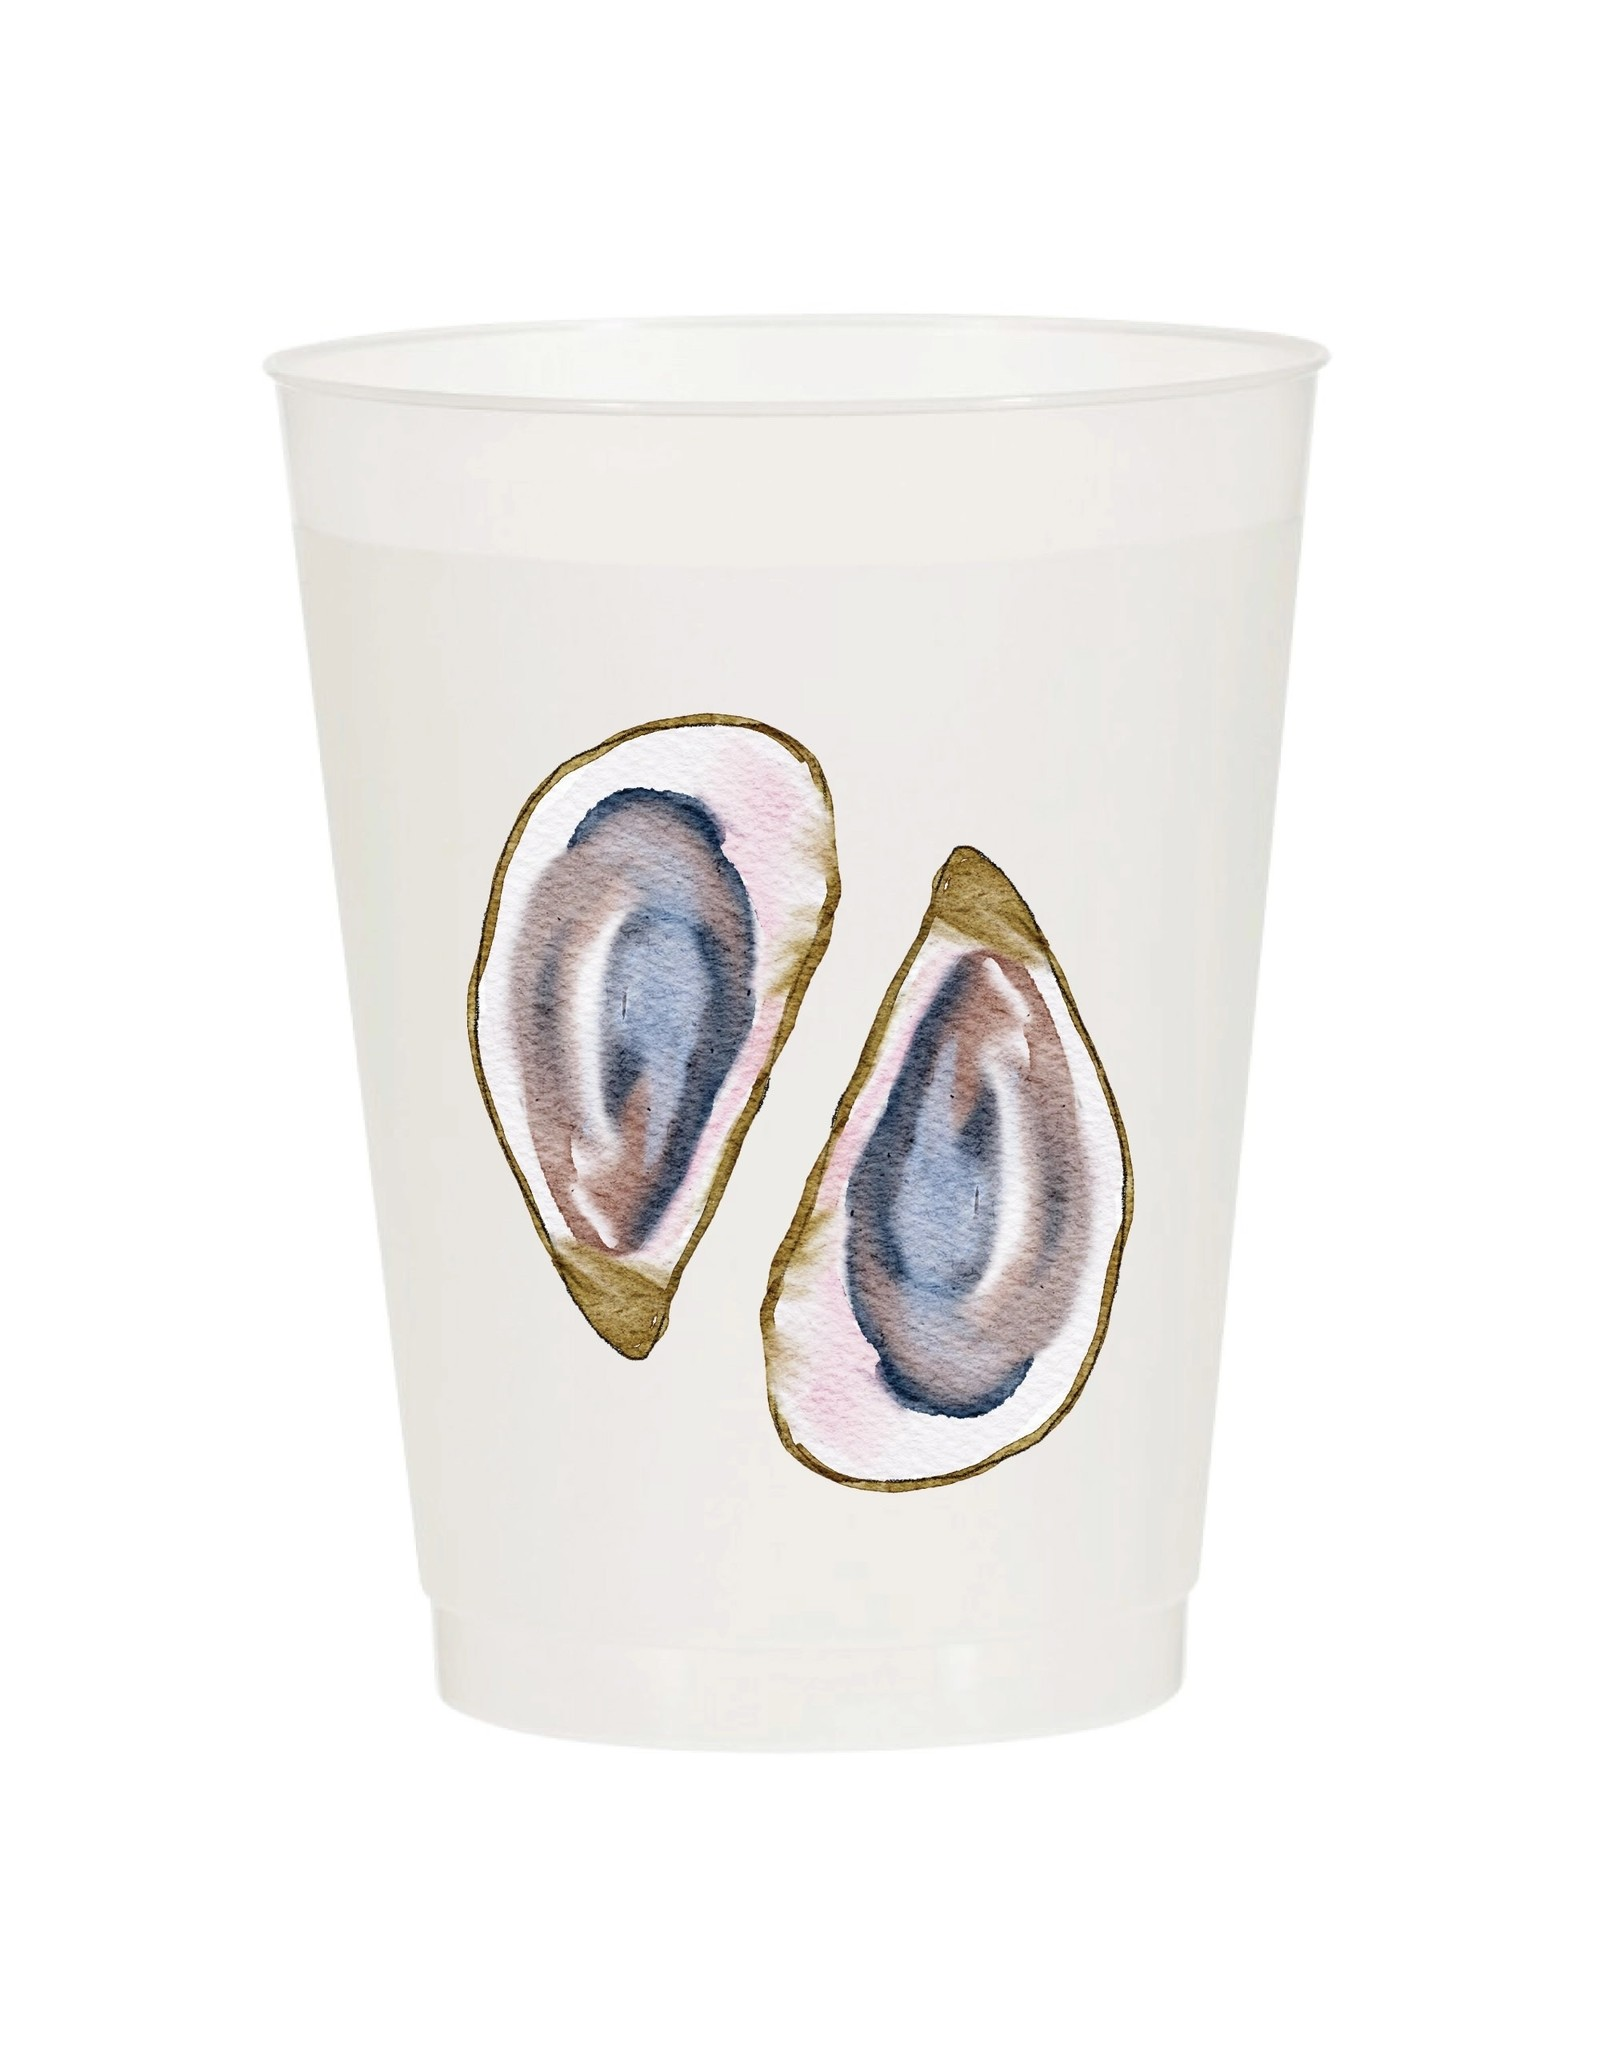 Sip Hip Hooray Oyster Watercolor Reusable Cups - Set of 10